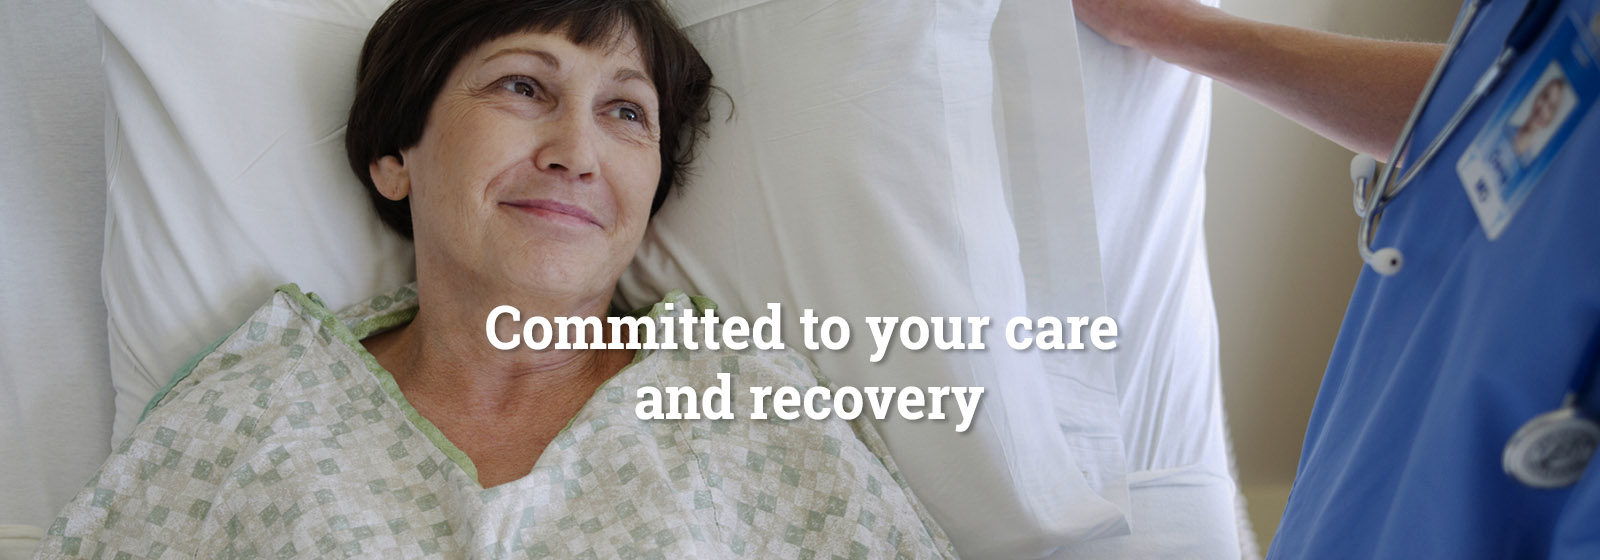 Committed to your care and recovery